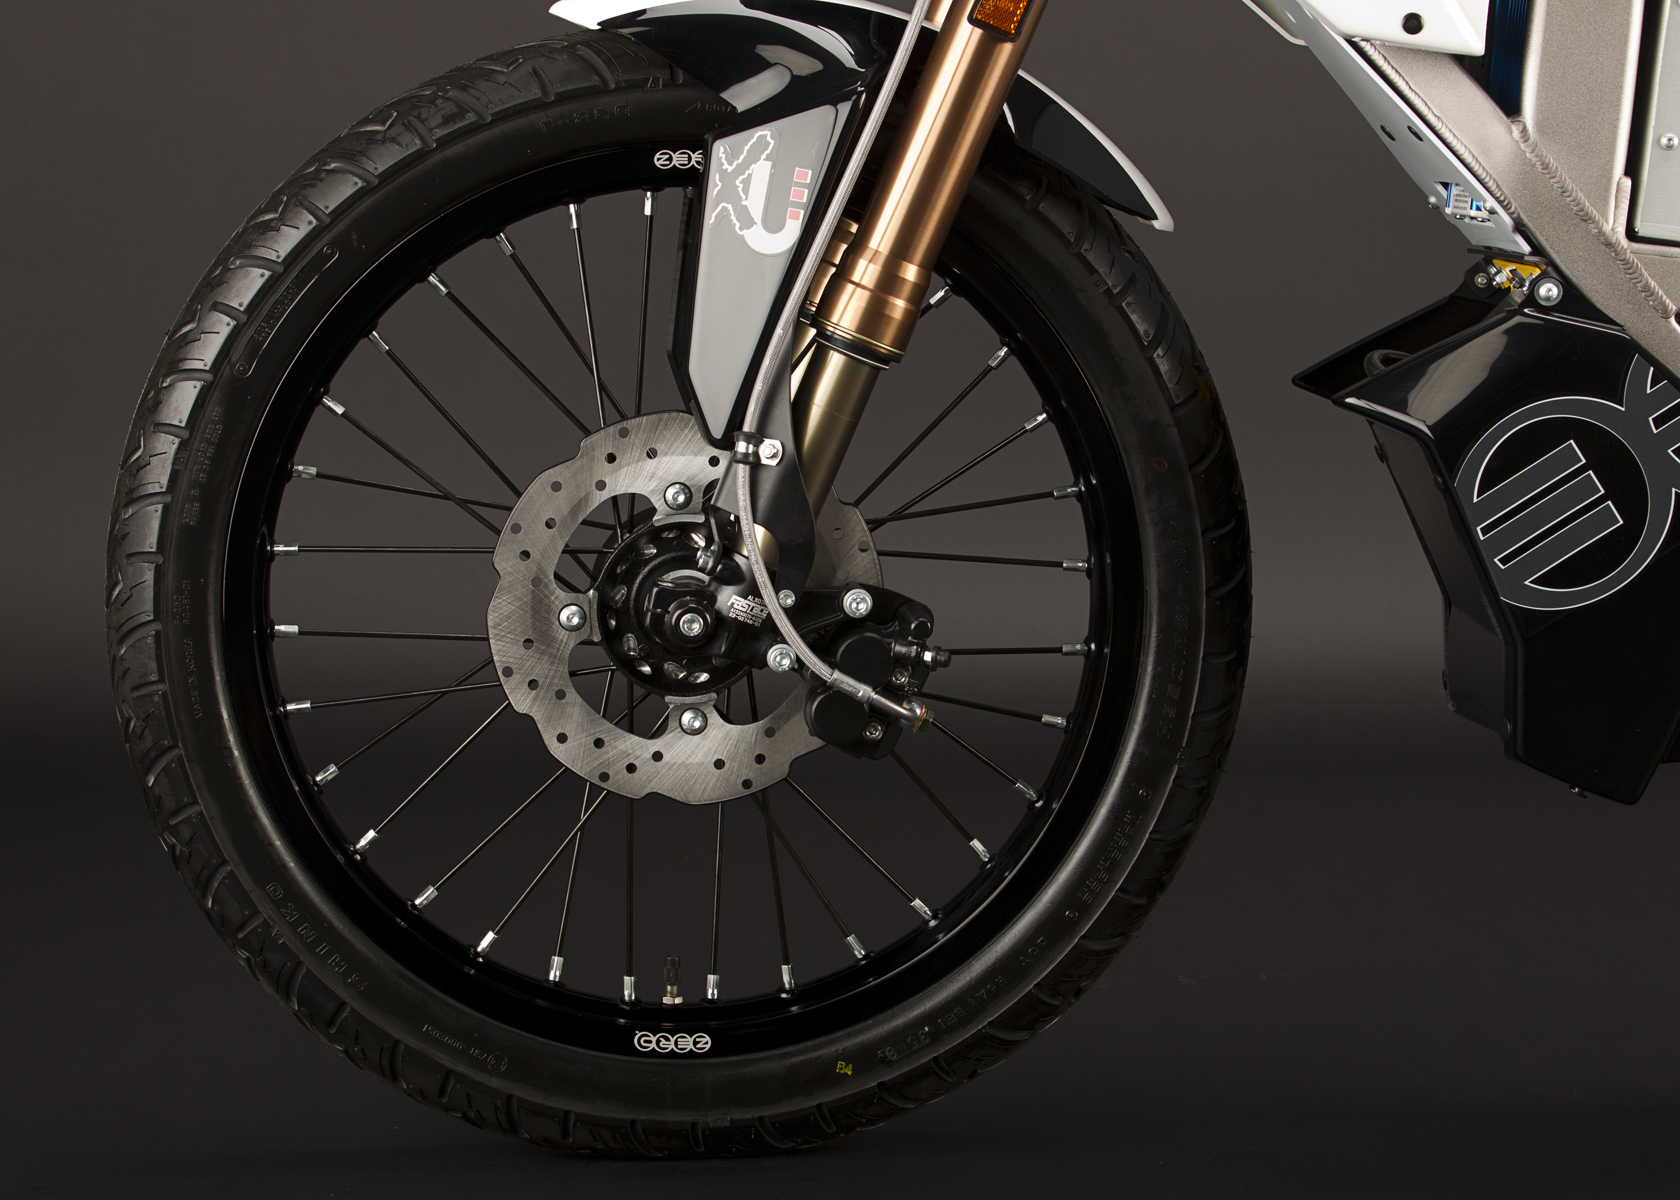 2011 Zero XU Electric Motorcycle: Front Tire